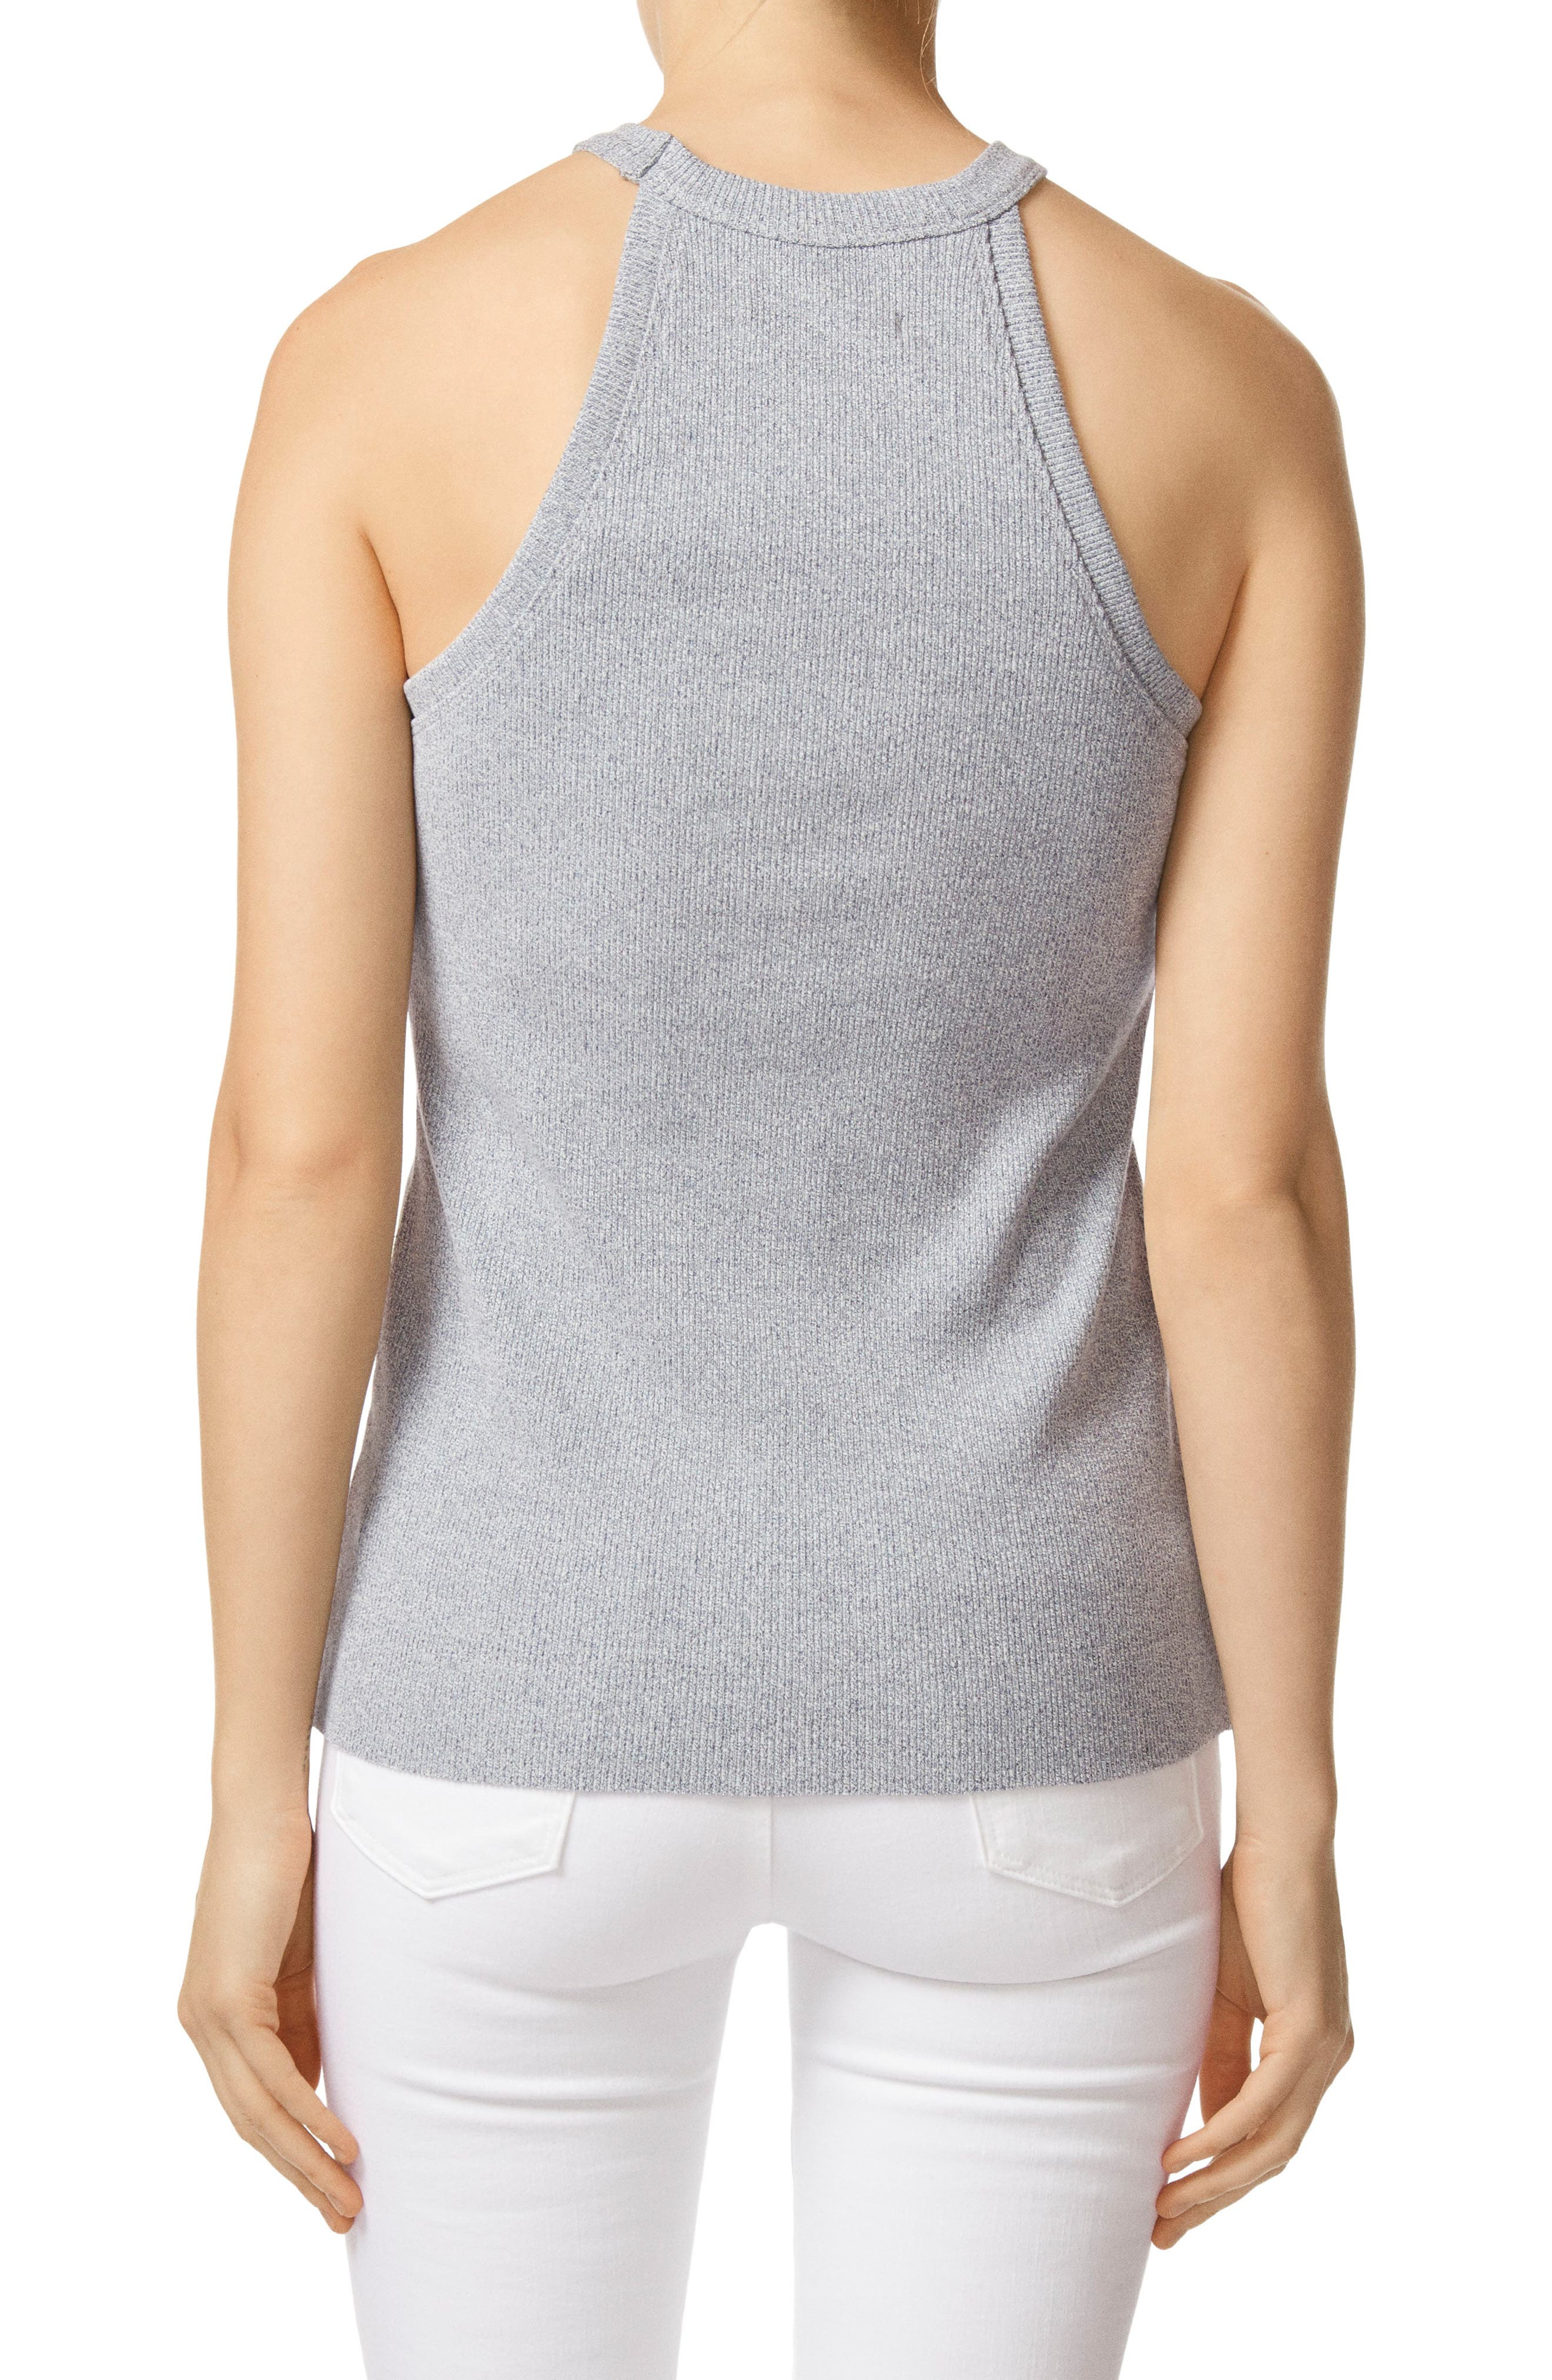 J BRAND,                             Coastal Halter Top,                             Alternate thumbnail 2, color,                             402